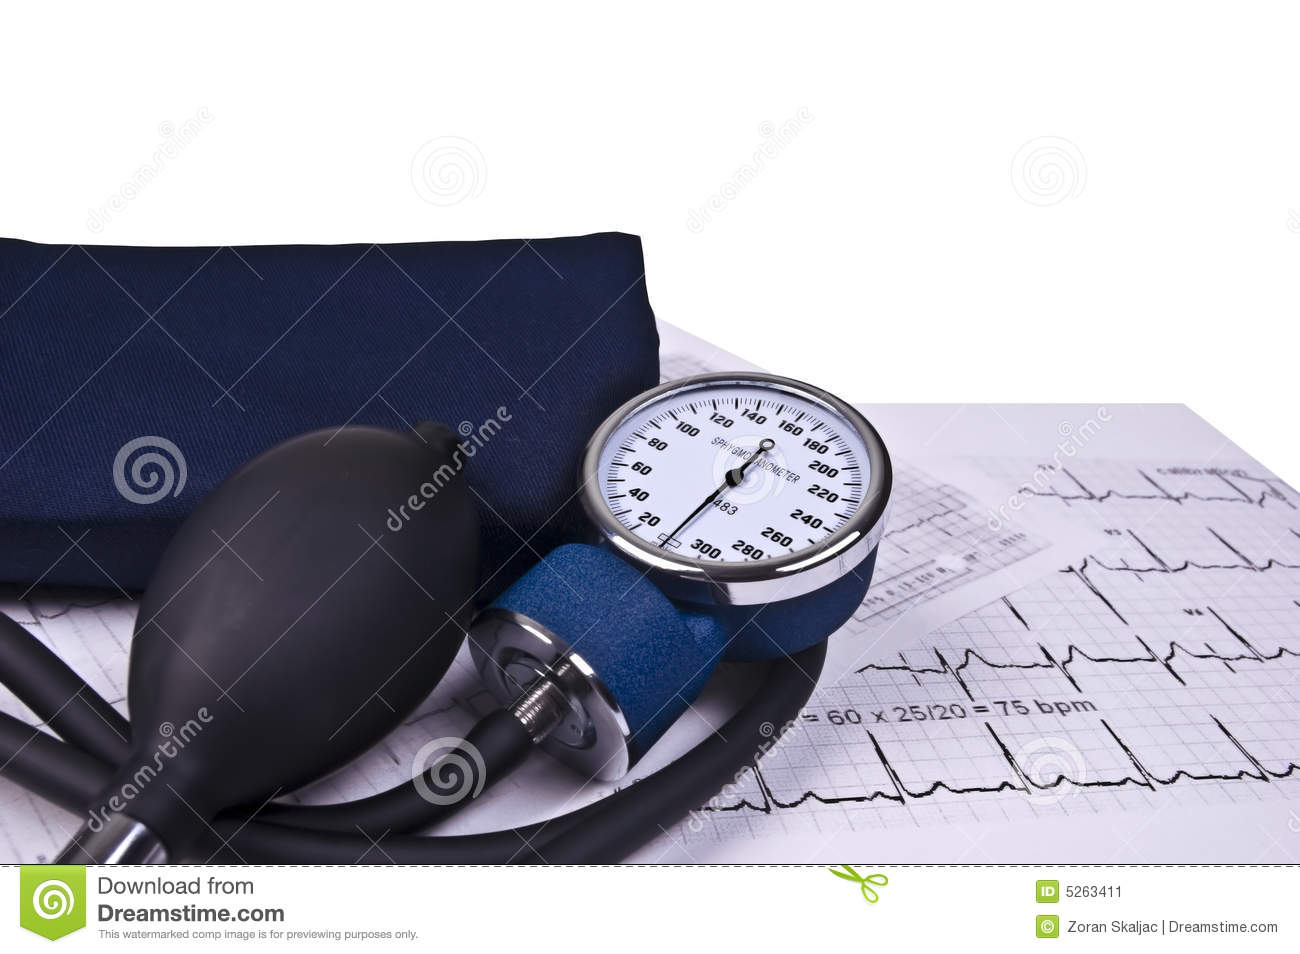 Blood pressure monitoring and EKG reading